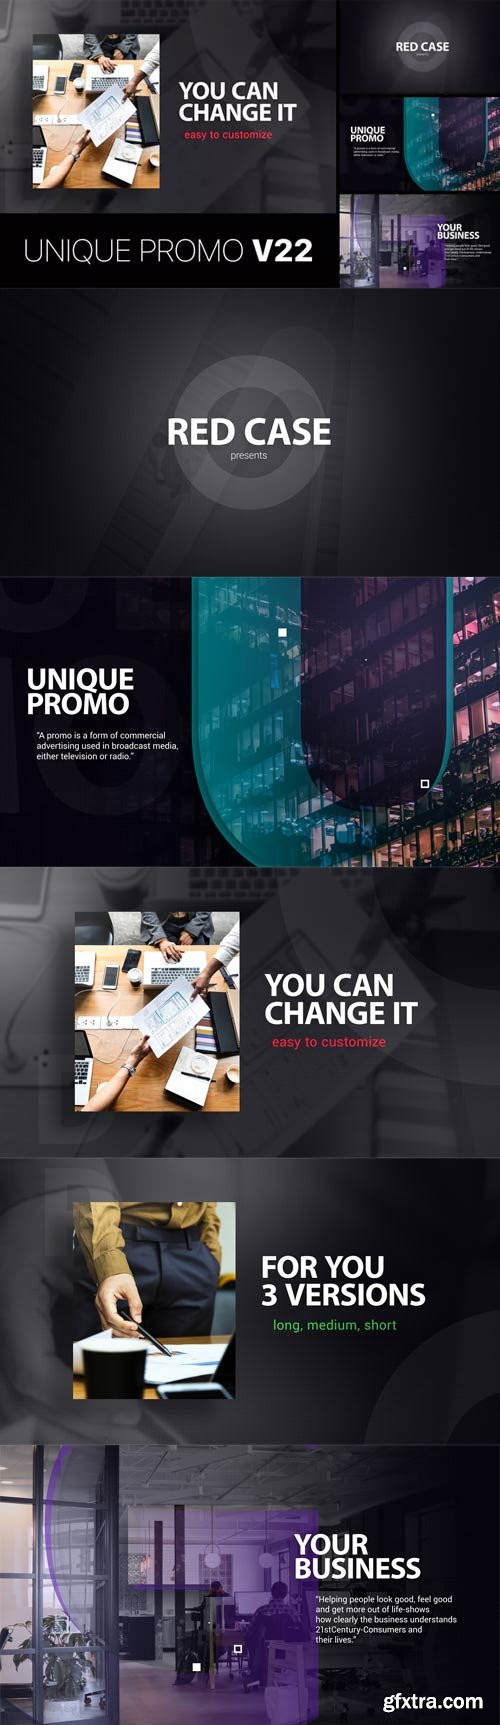 Videohive - Unique Promo v22 - 22621109